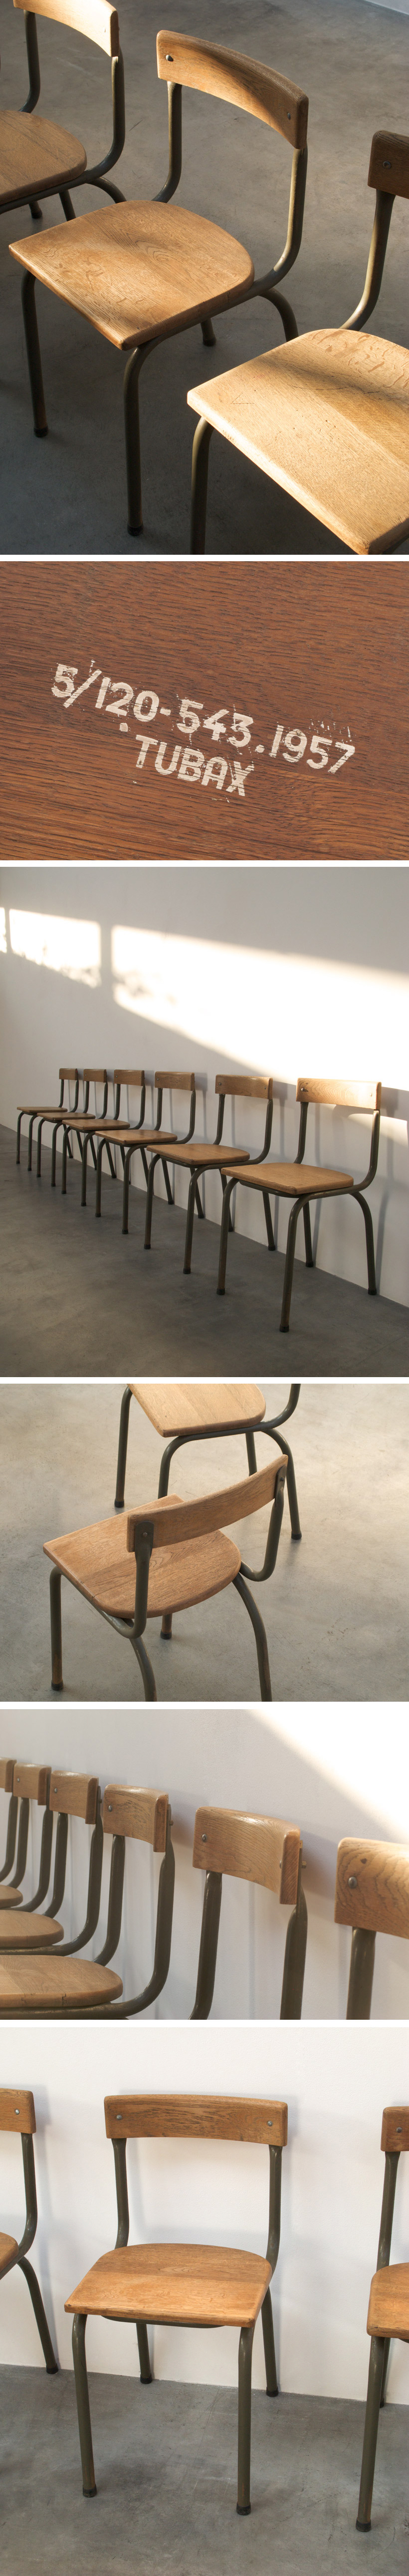 Industrial chairs Tubax dated 1957 Large